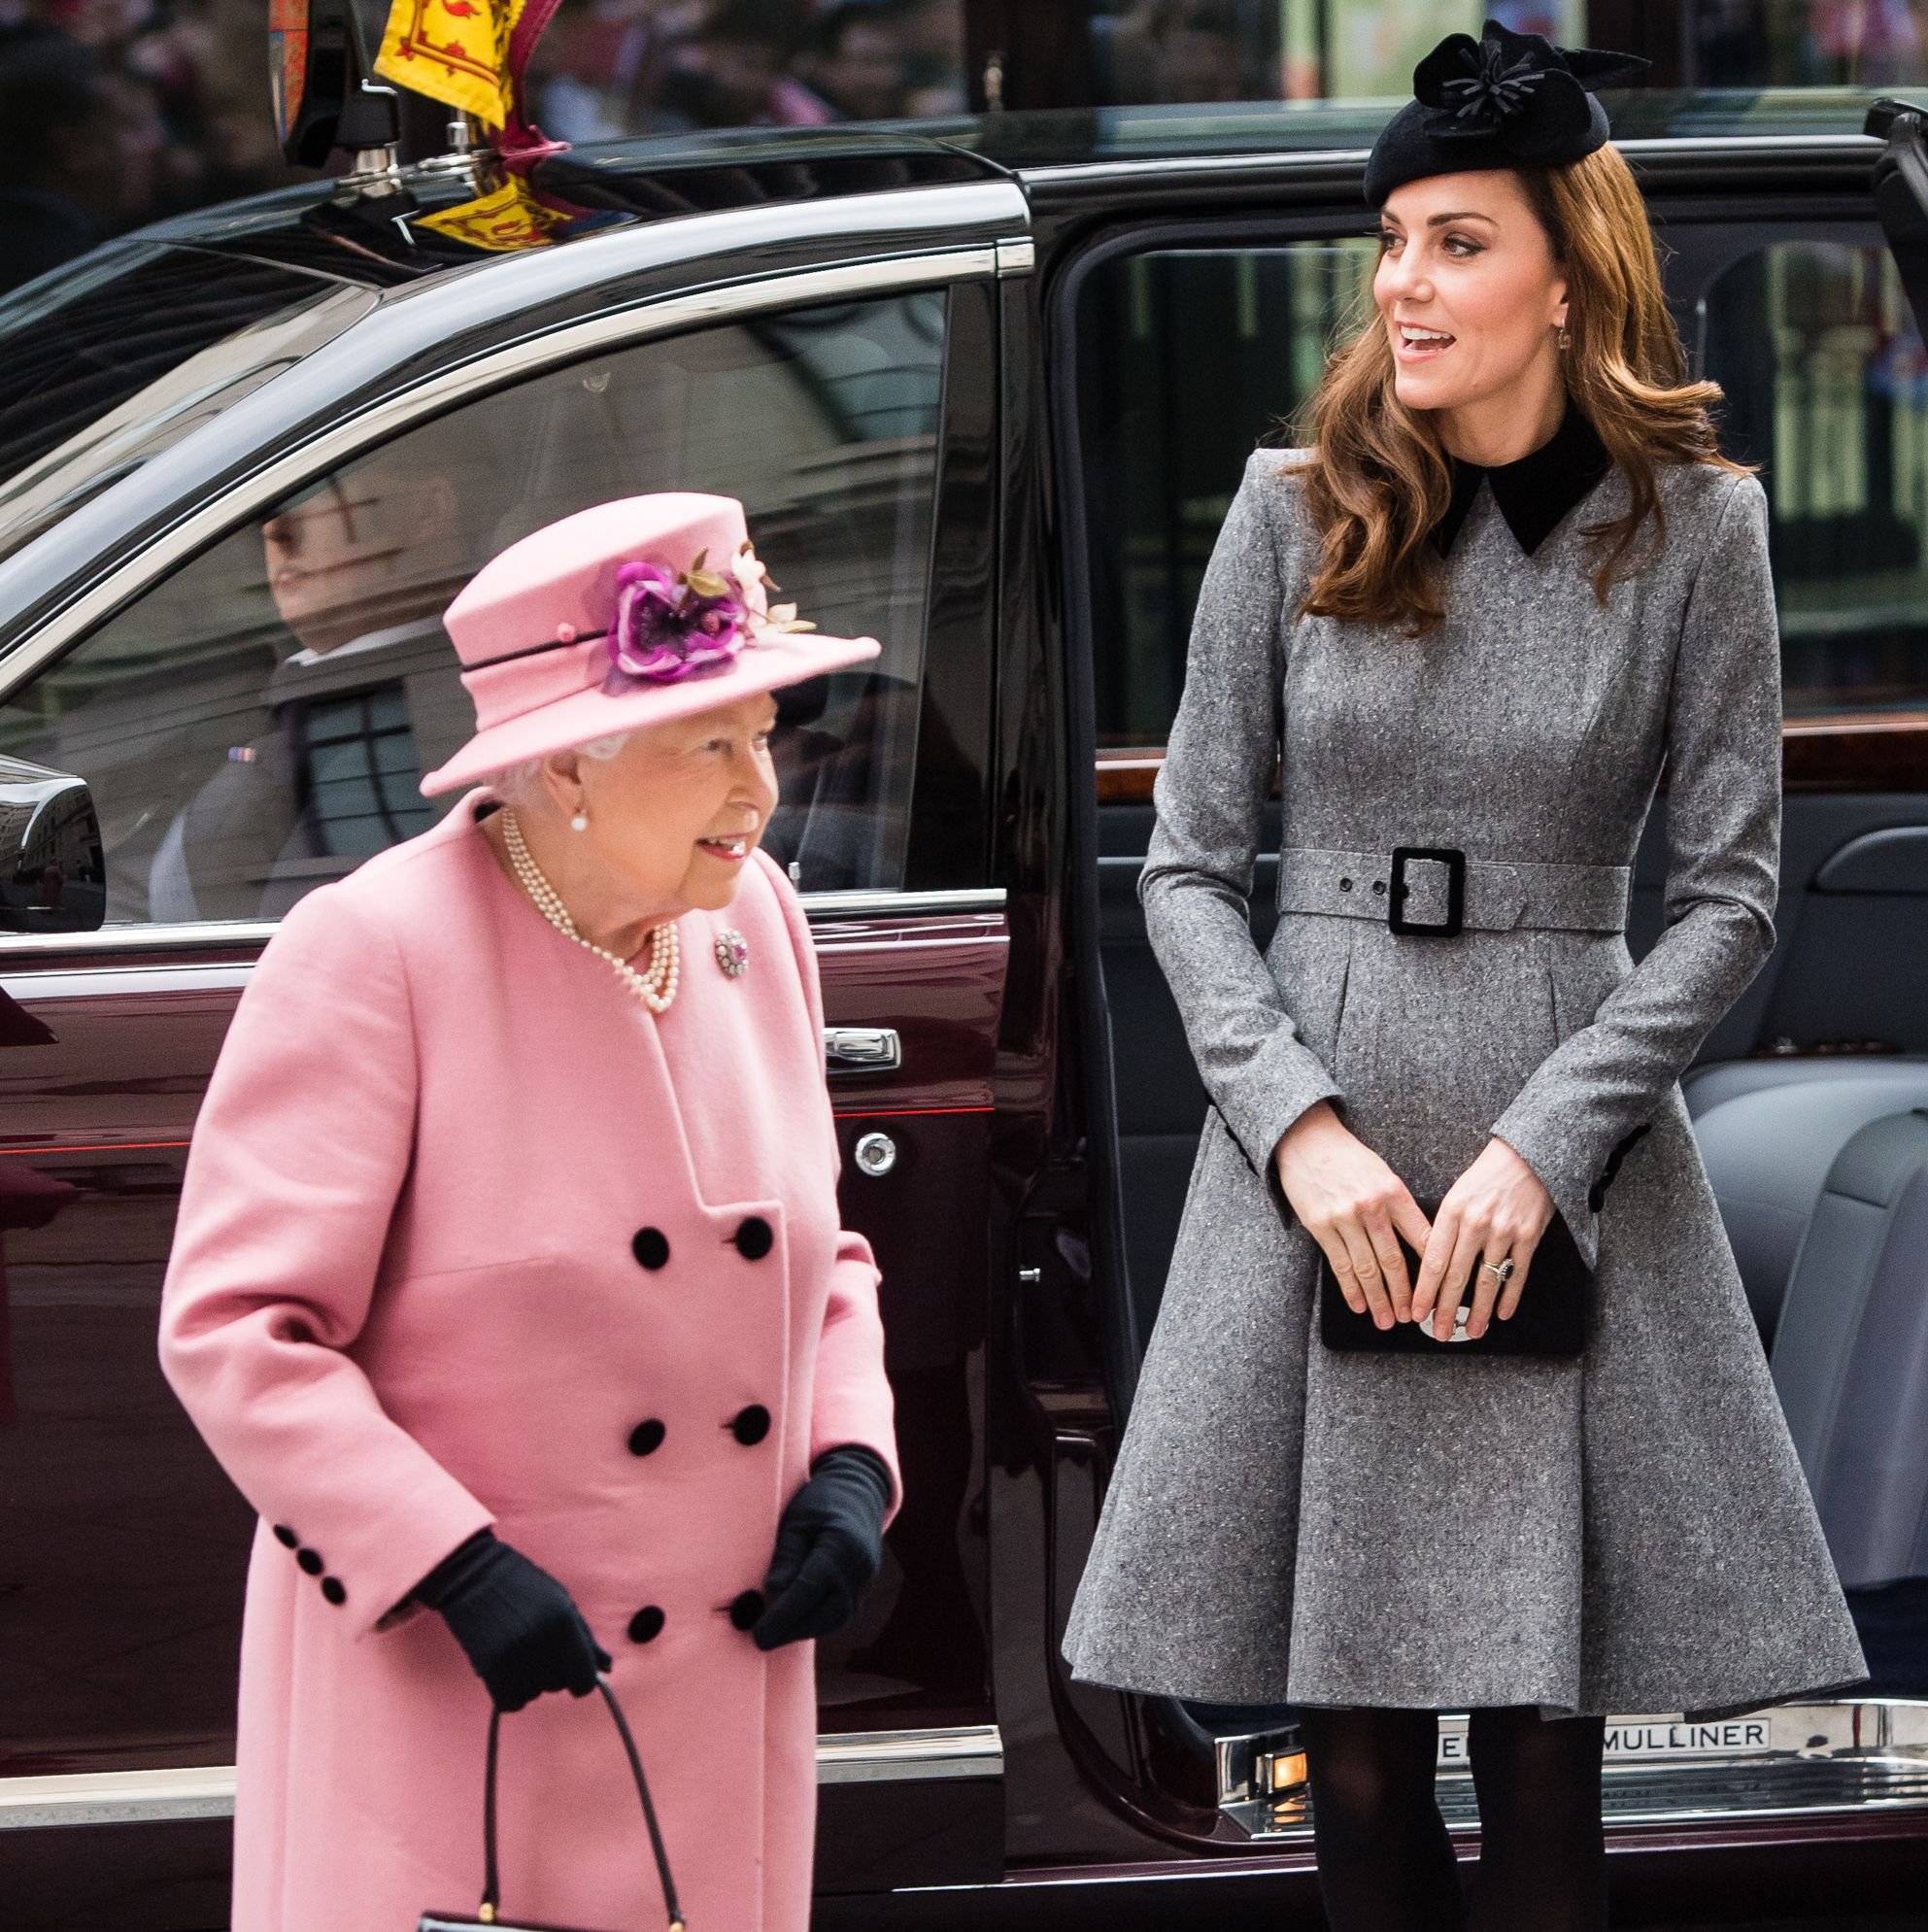 Kate Middleton's First Solo Royal Engagement with the Queen, Compared to their 2012 Appearance